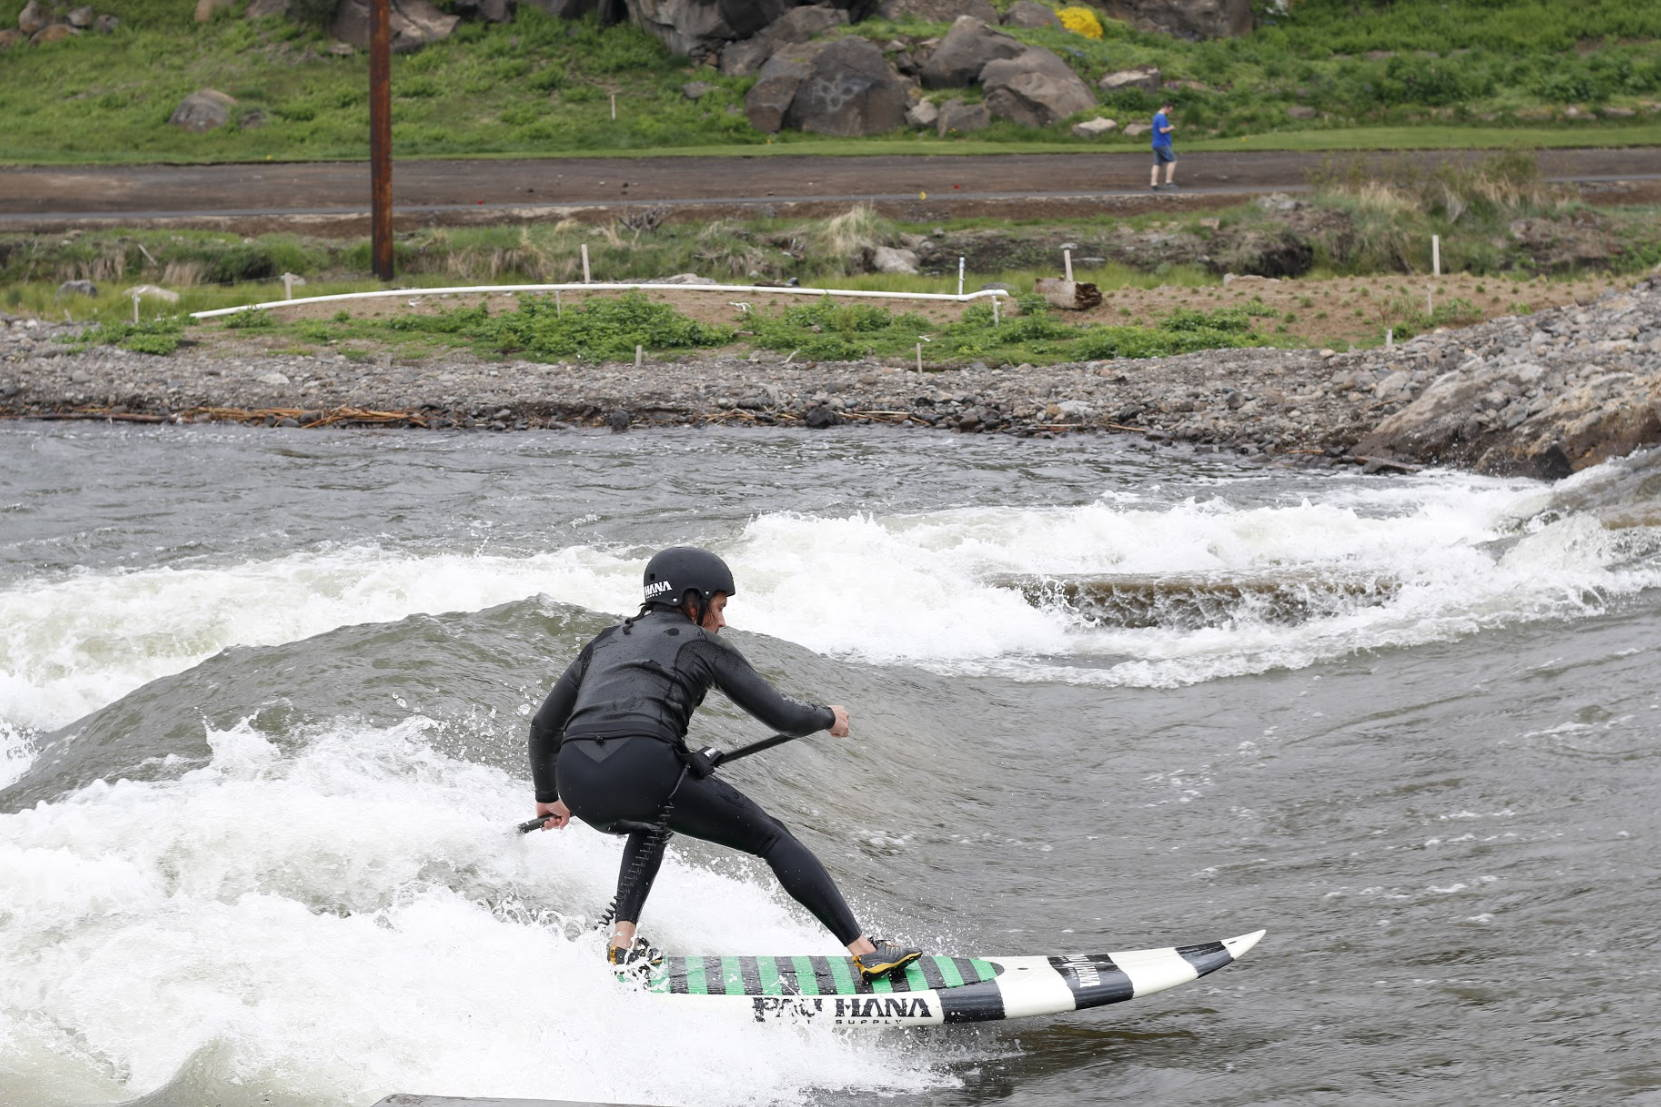 Todd surfing on the bend Oregon river wave